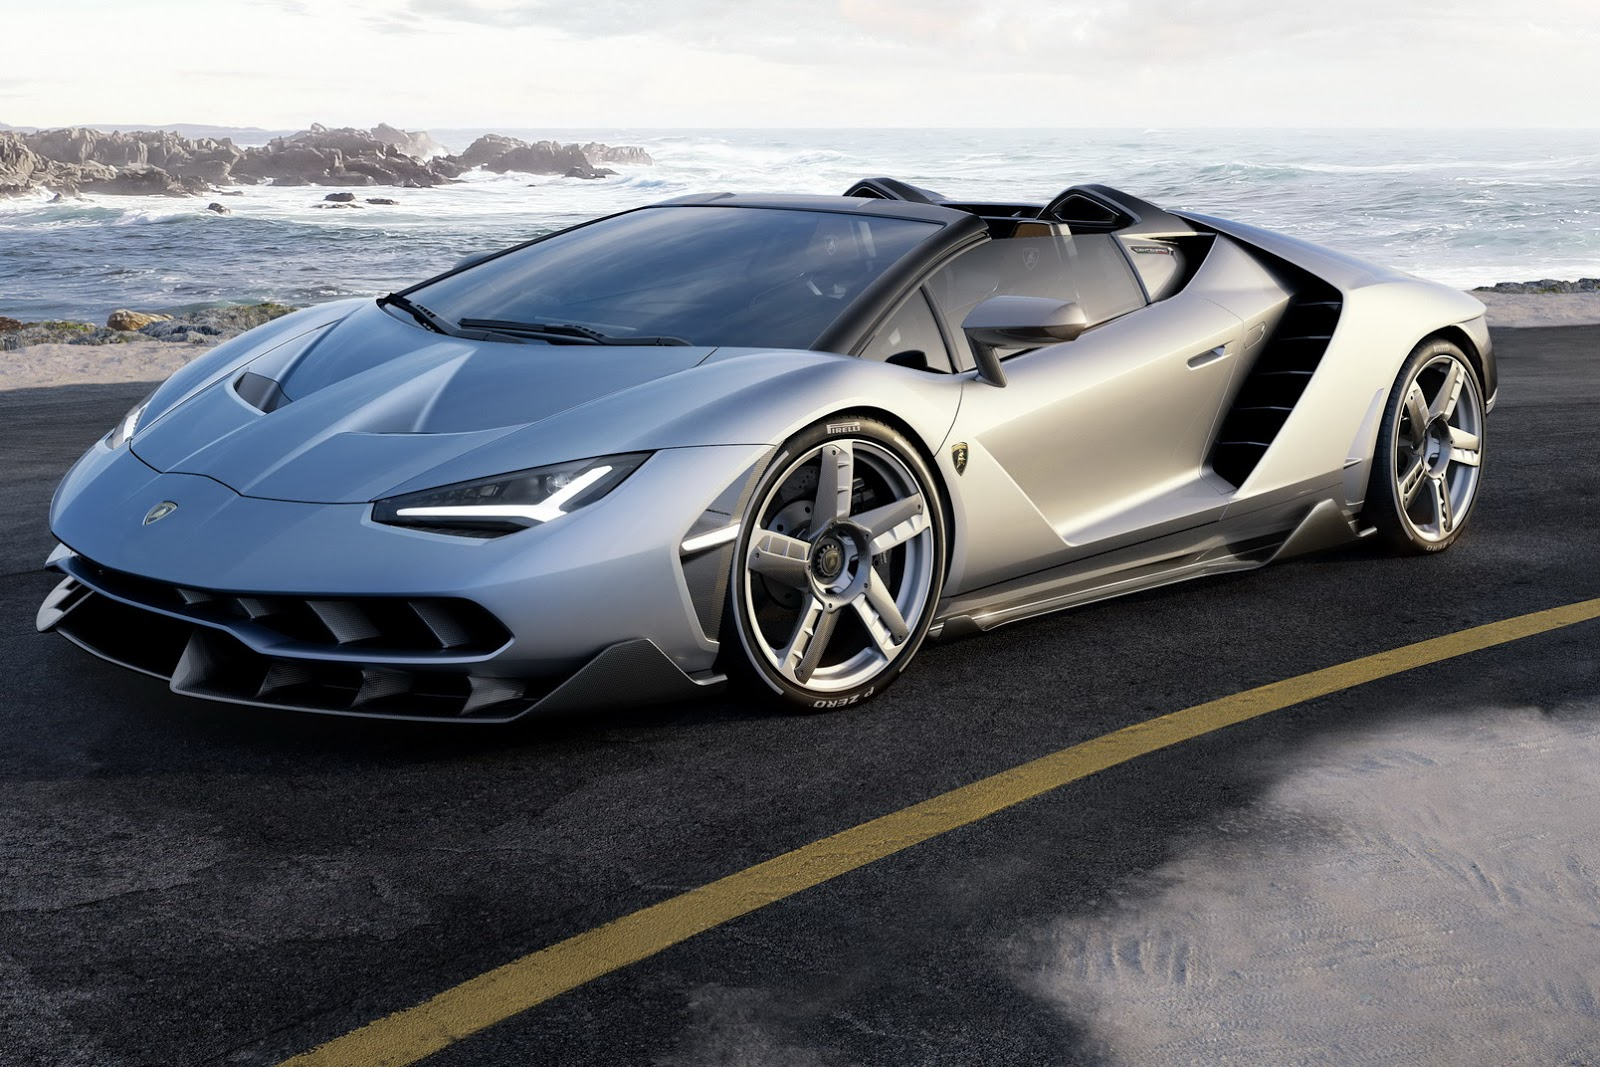 770 Hp Lamborghini Centenario Roadster Unveiled In Pebble